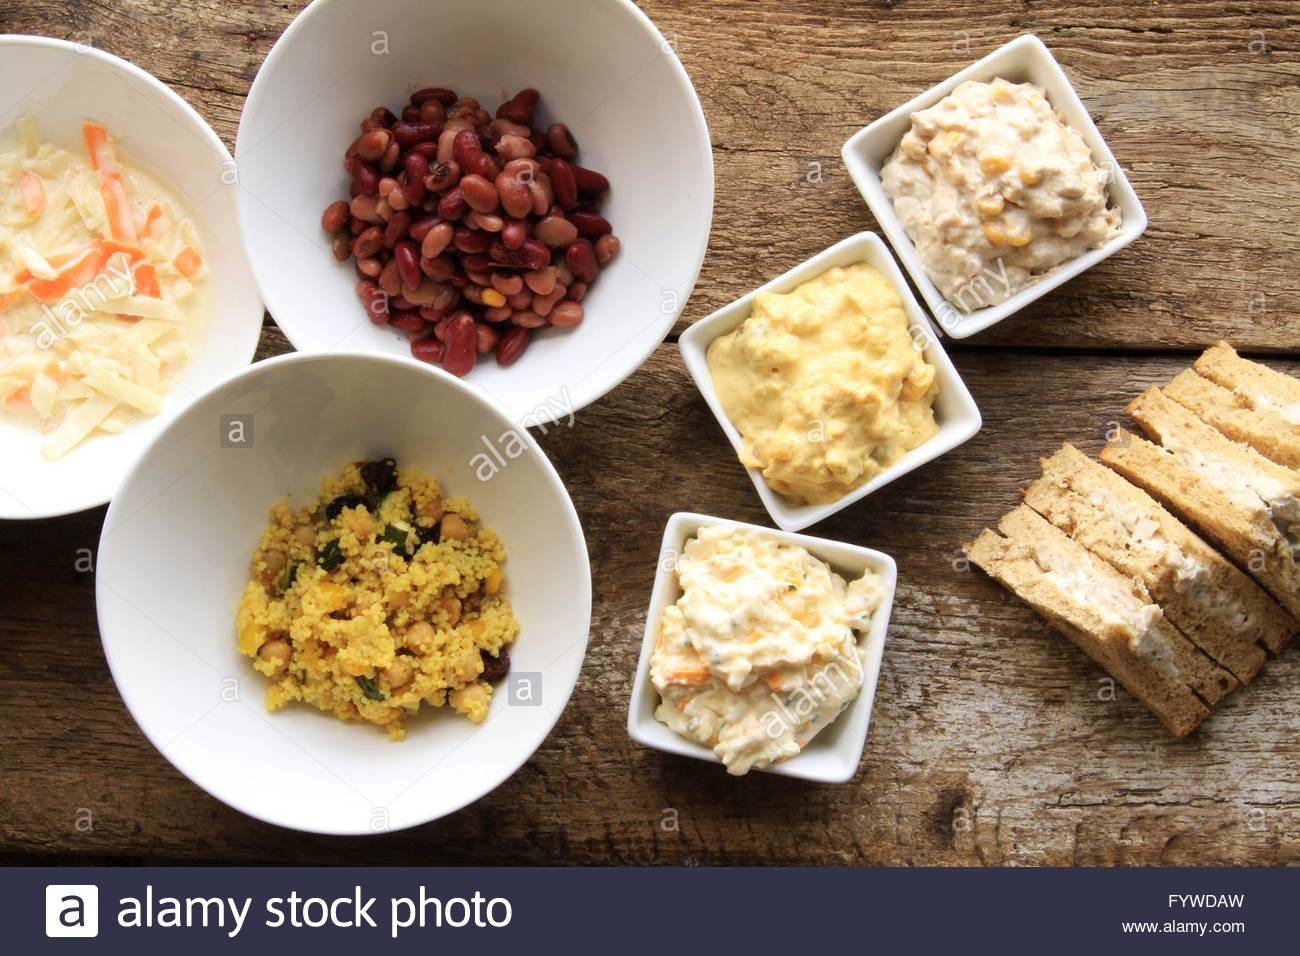 sandwich fillings - Stock Image